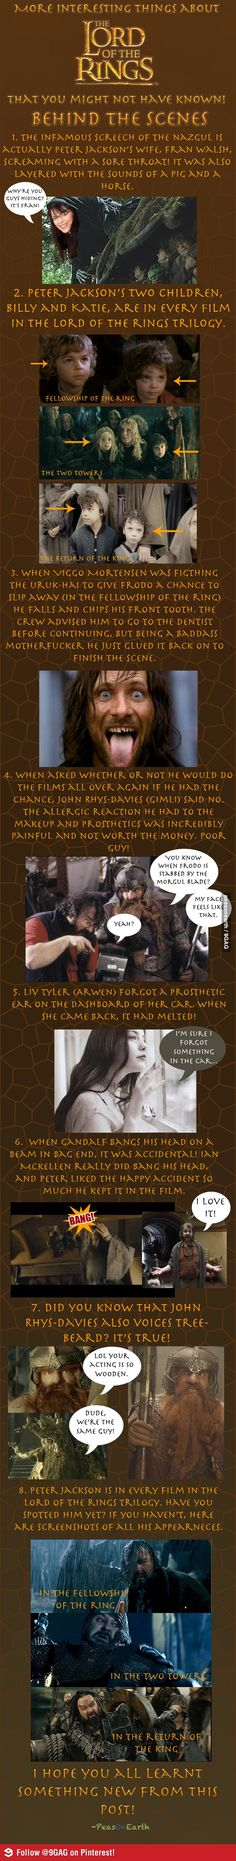 More LOTR behind-the-scenes facts and stories!